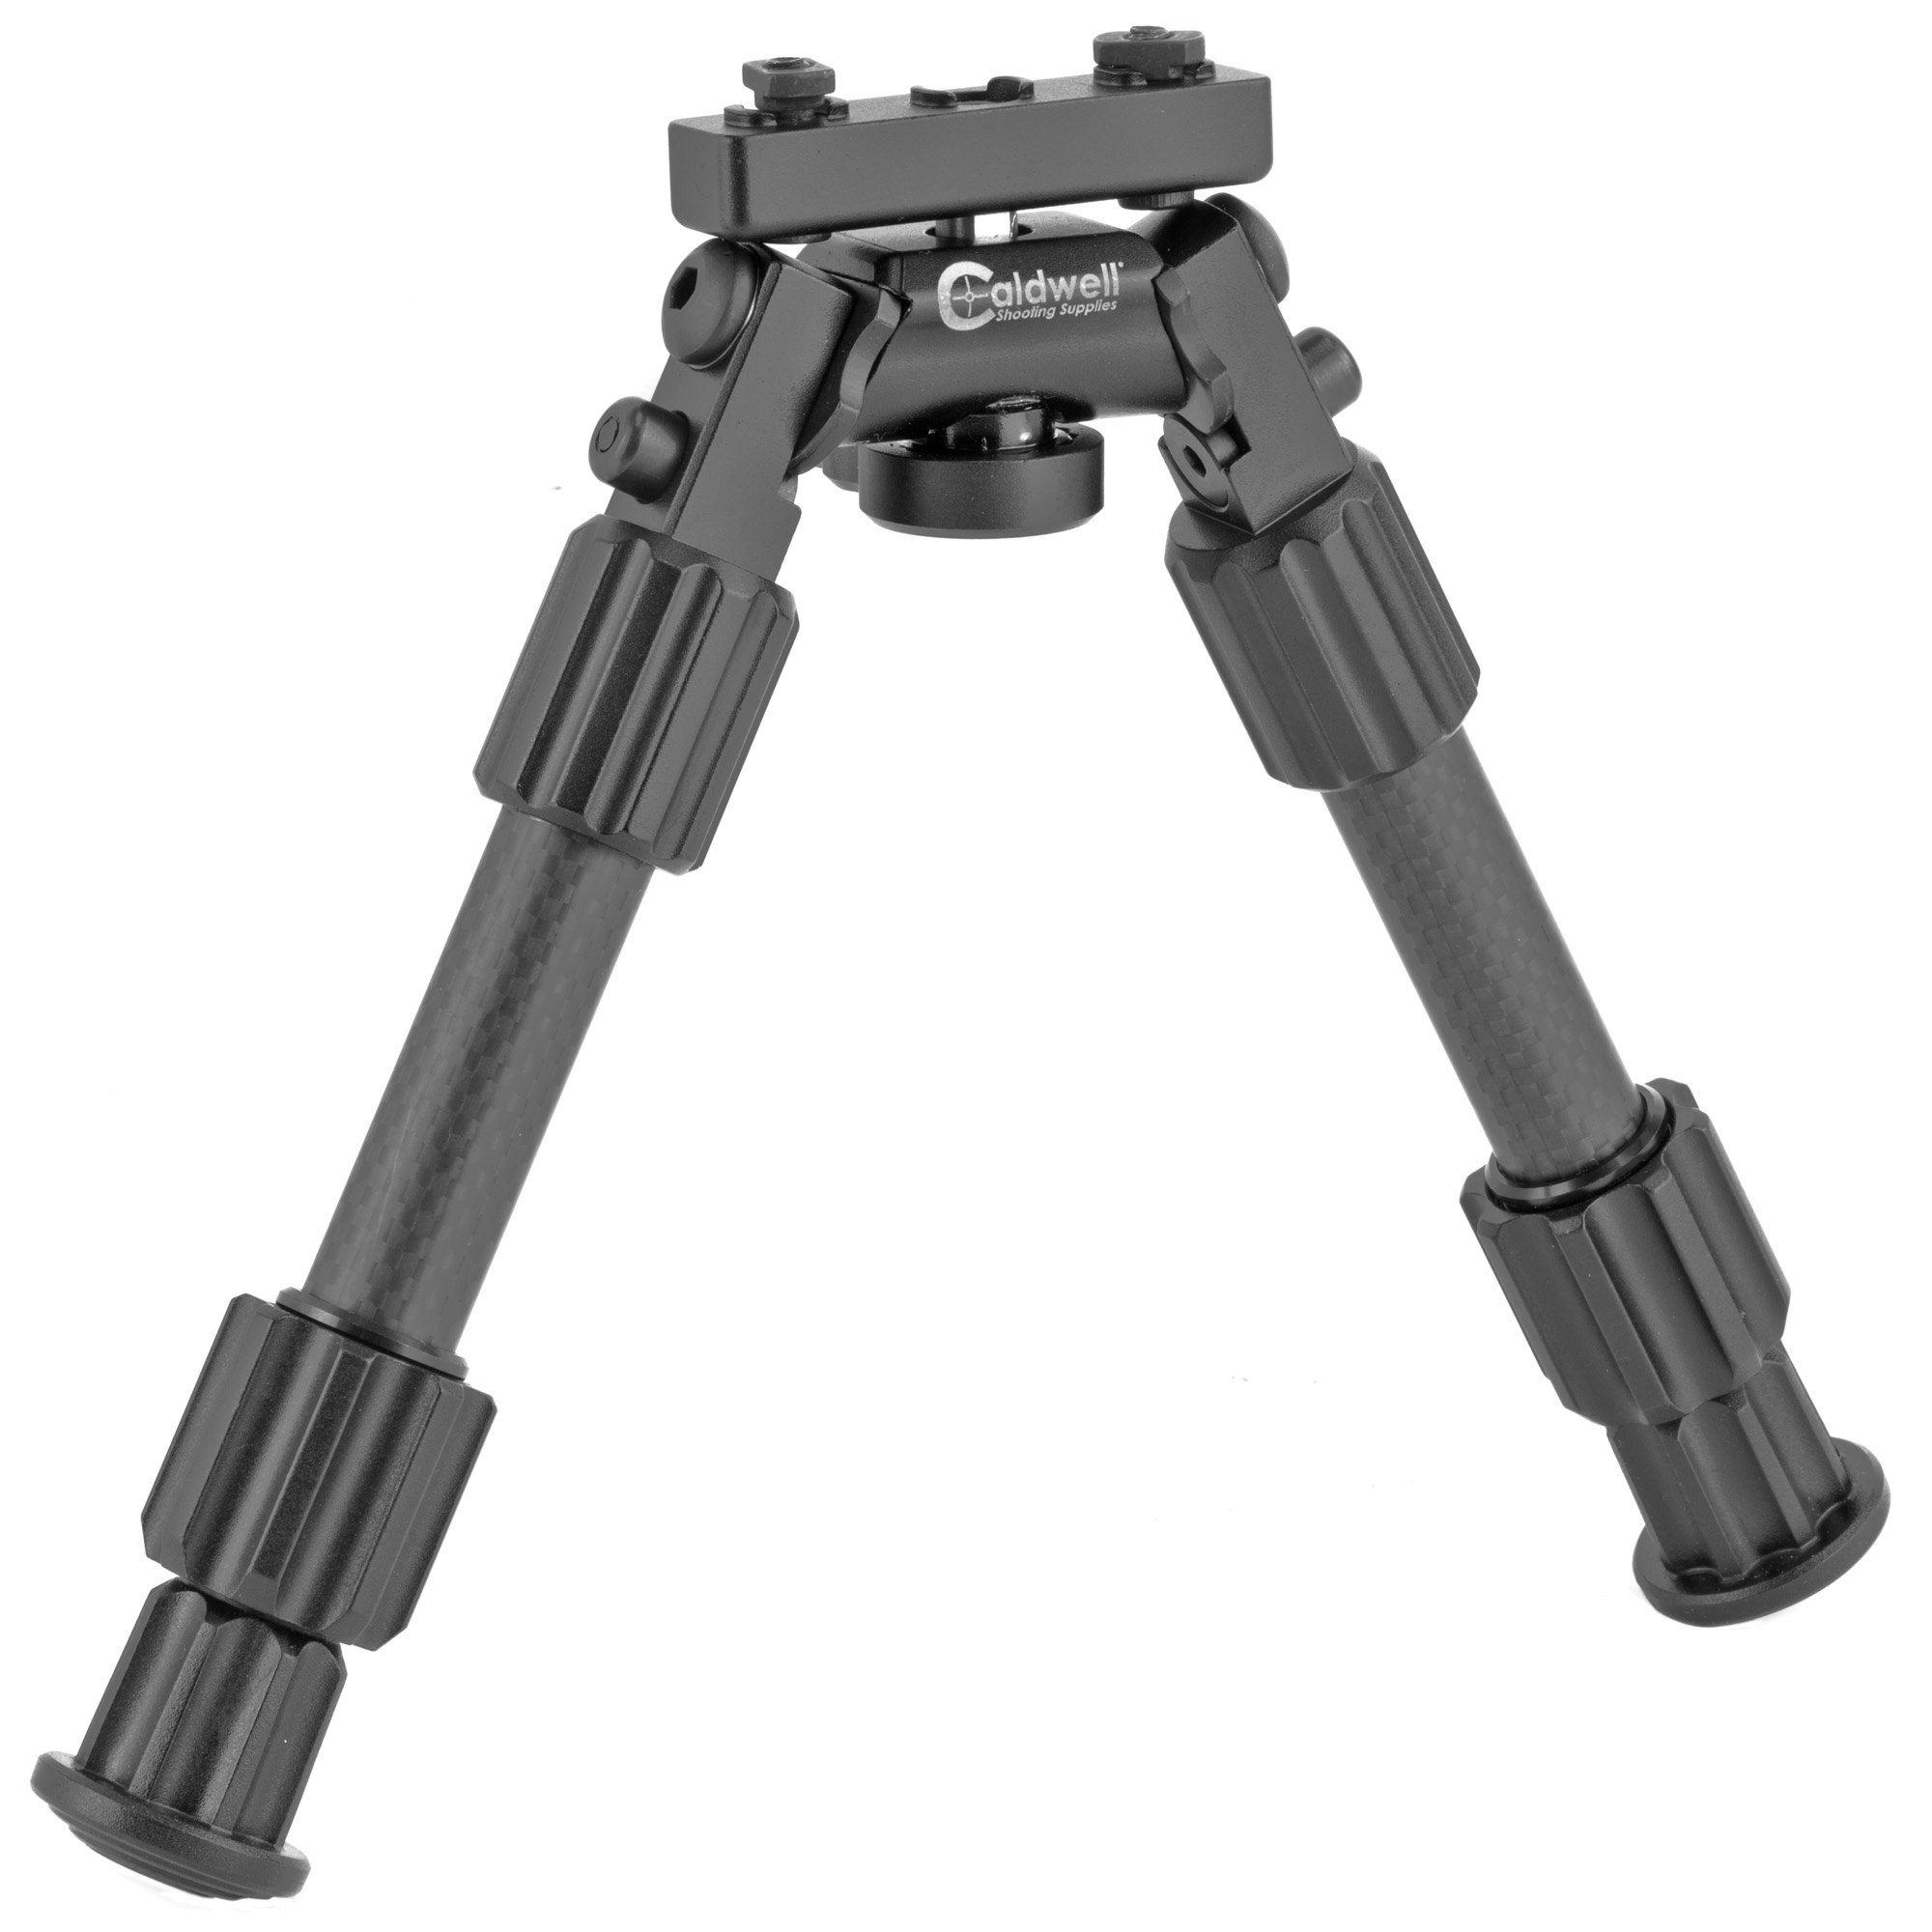 """Caldwell's ACCUMAX 6""""-9"""" Universal Bipod lets you have a bipod on your AR without all the extra weight of adaptors. Designed to mount directly to either M-Lok or KeyMod handguard with adaptors for both styles included. Get a top quality Caldwell bipod on your AR without any extra weight to slow you down."""